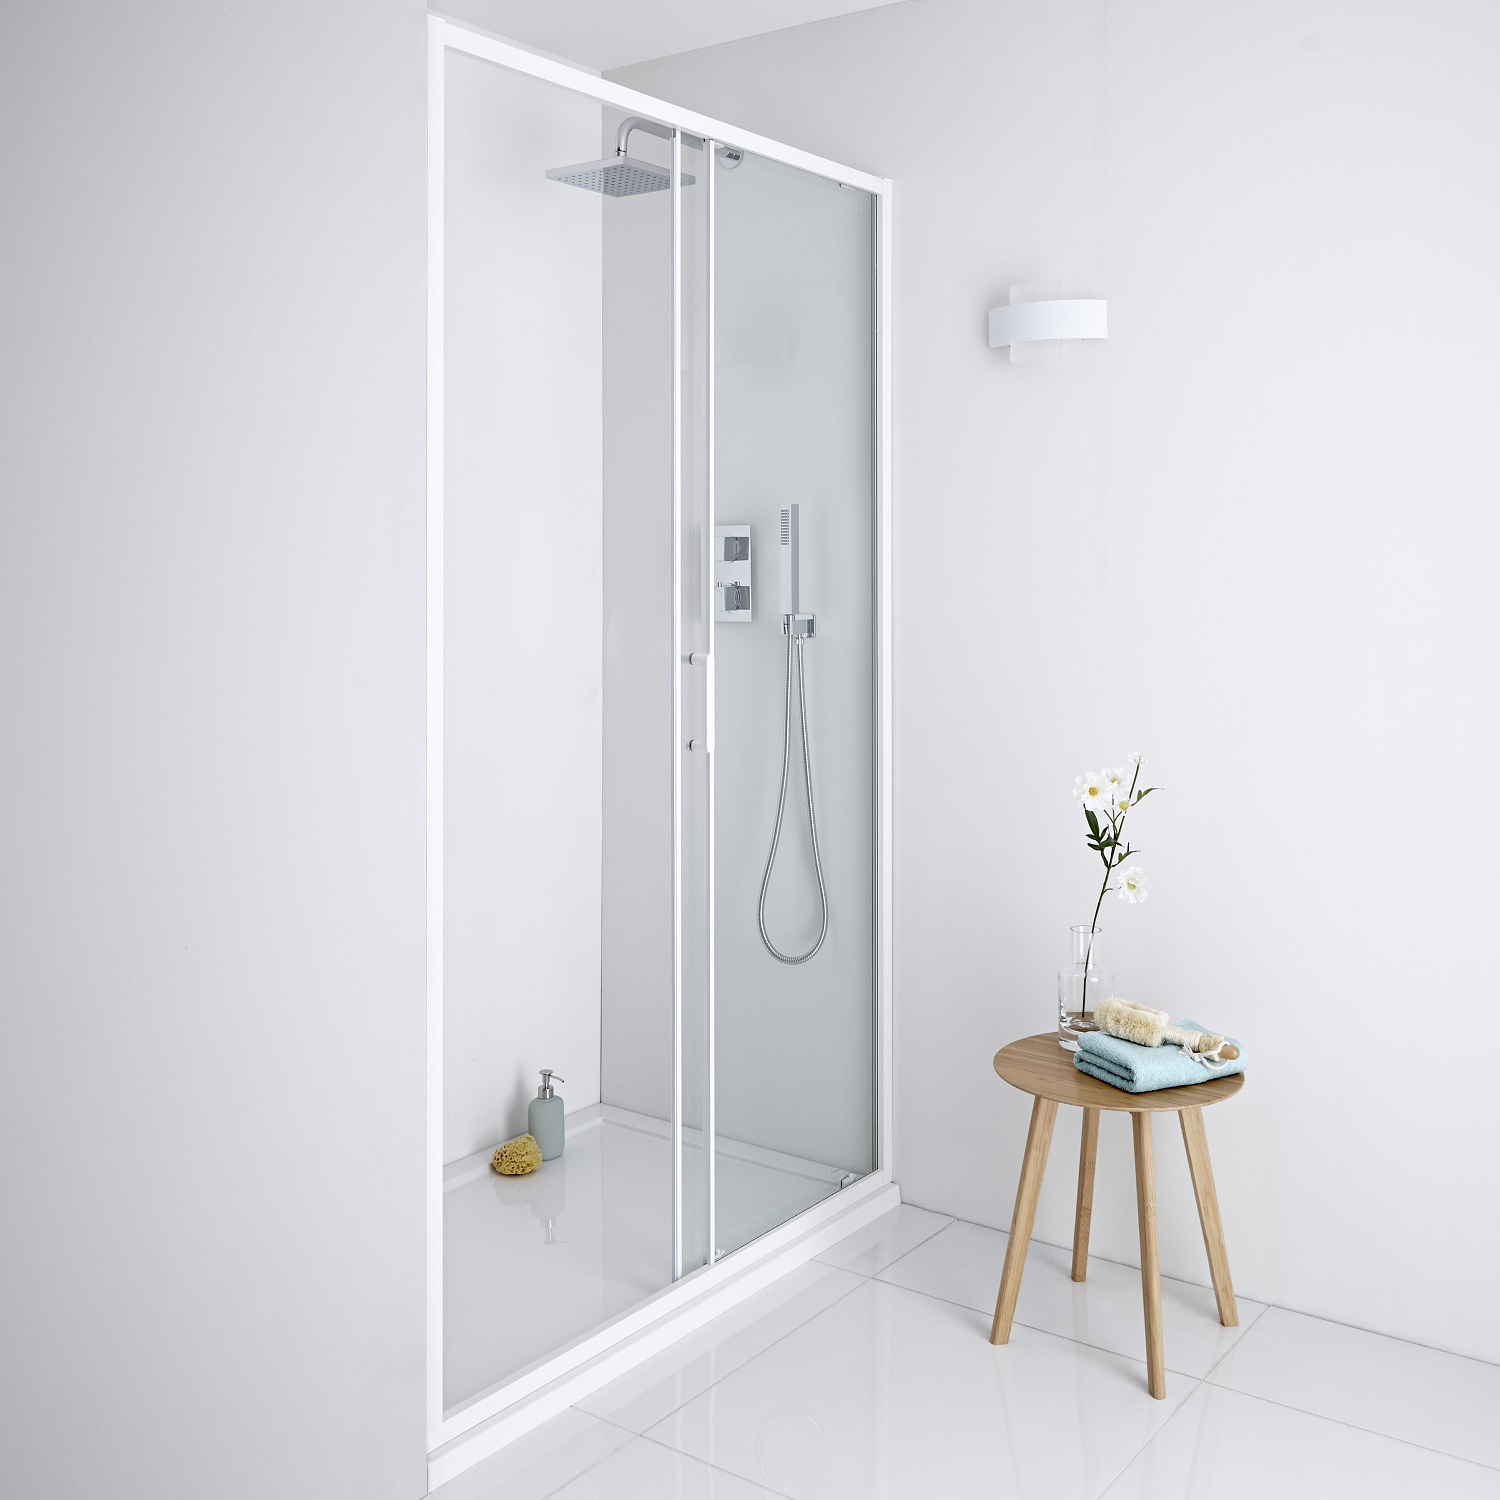 Cleaning Guide How To Clean Your Glass Shower Doors Properly: How To Clean Shower Glass